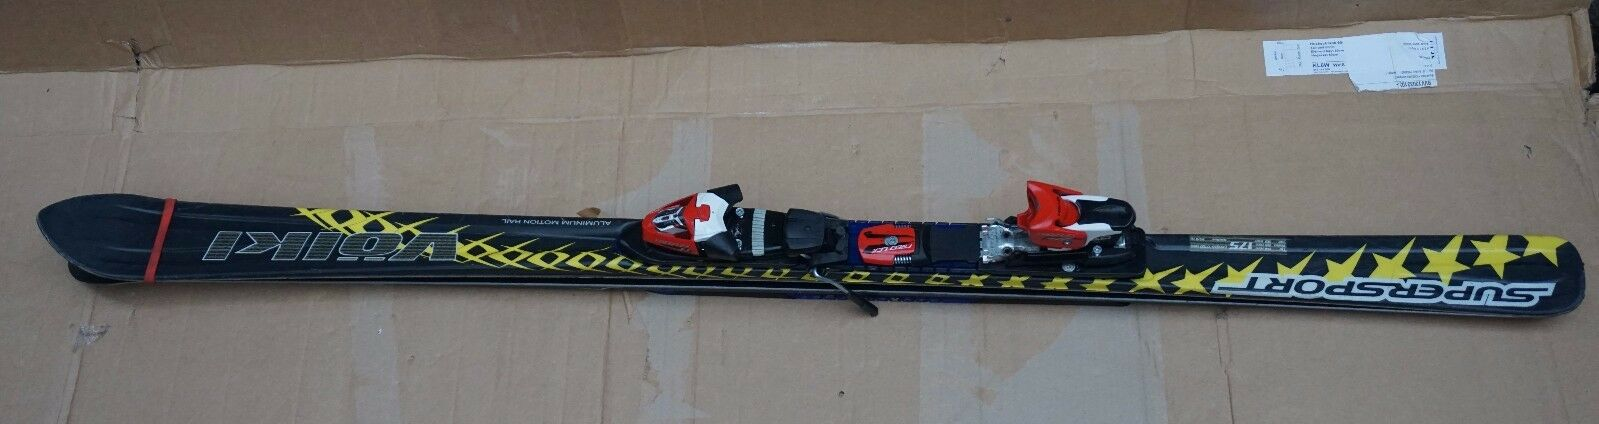 ALPIN-SKIS VÖLKL  SUPERSPORT  five star 175cm  wholesale cheap and high quality